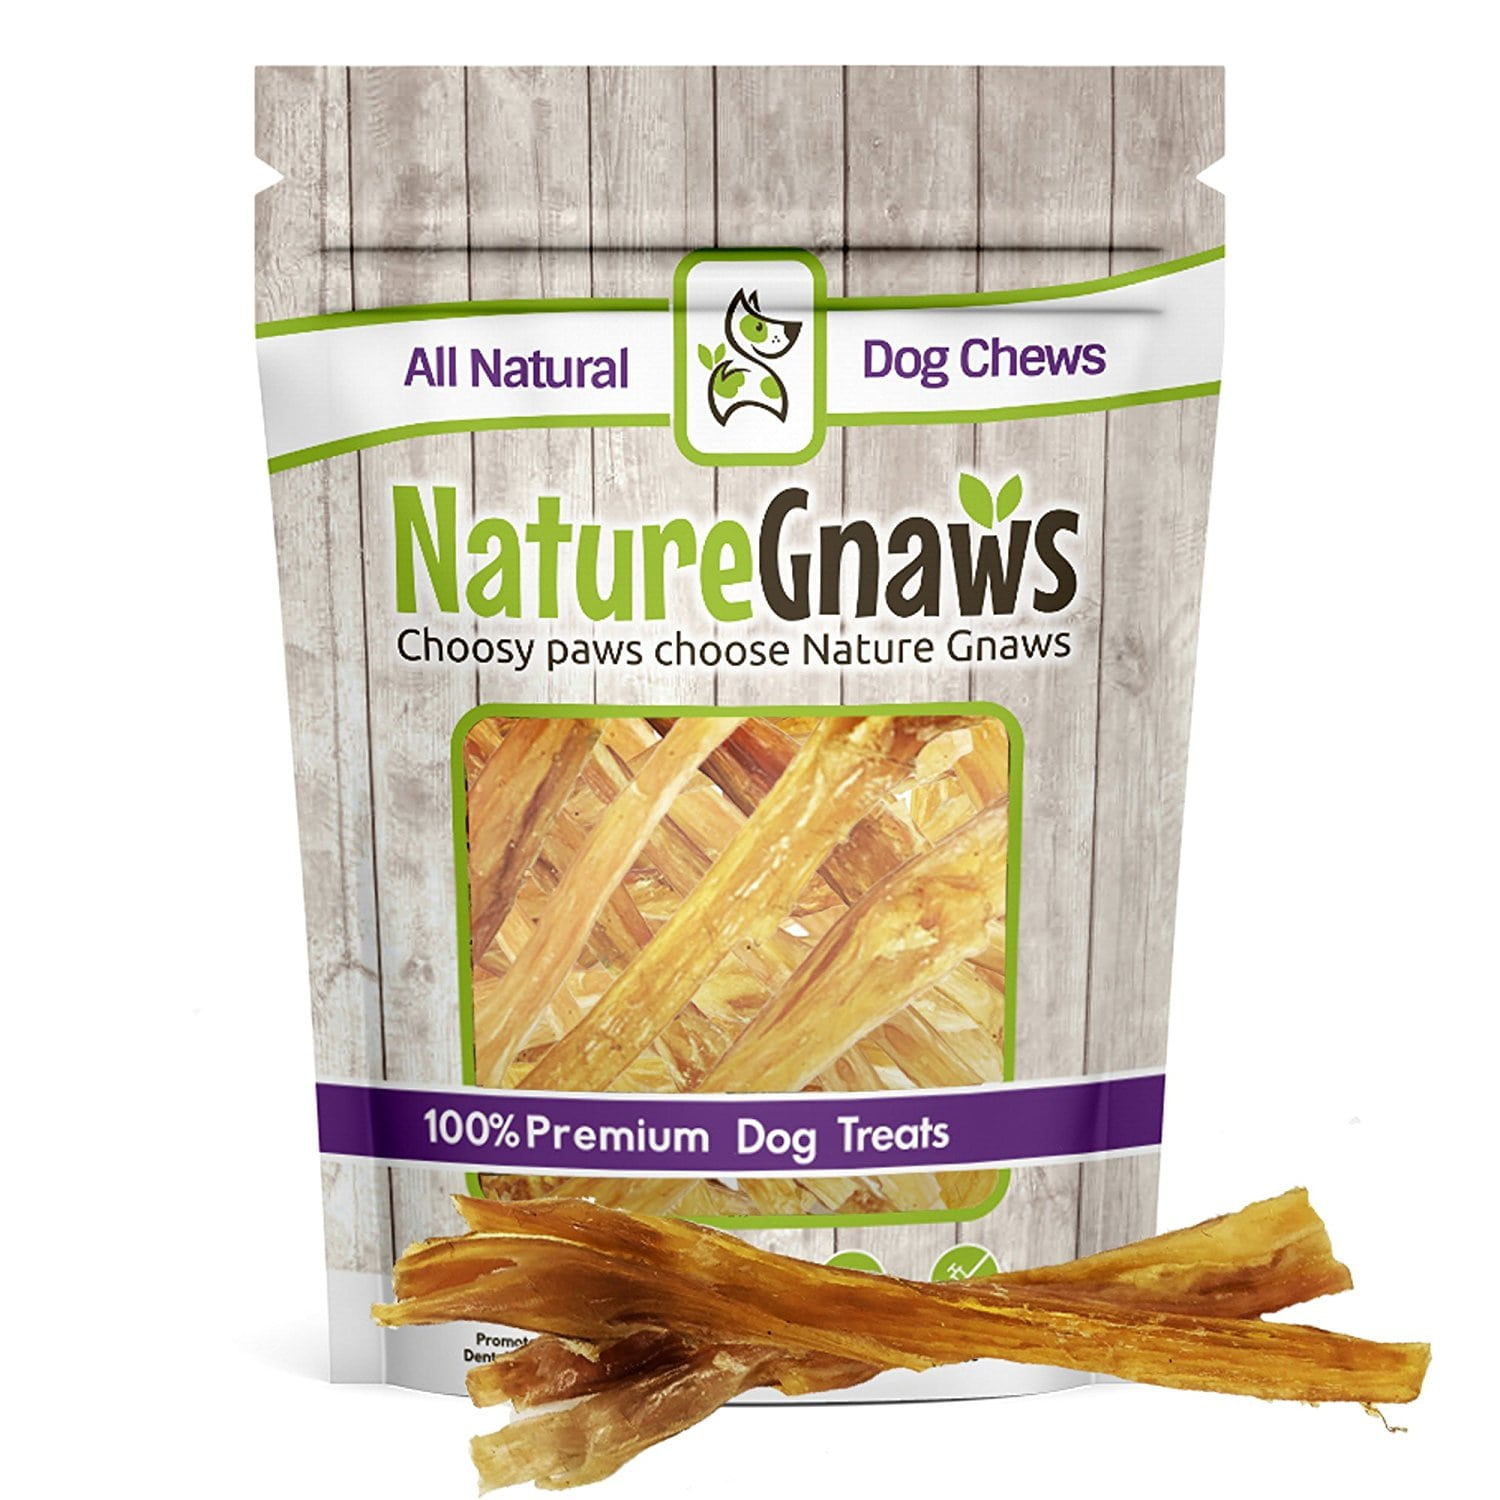 Nature Gnaws Tendon Chews Reviews by www.puppyurl.com